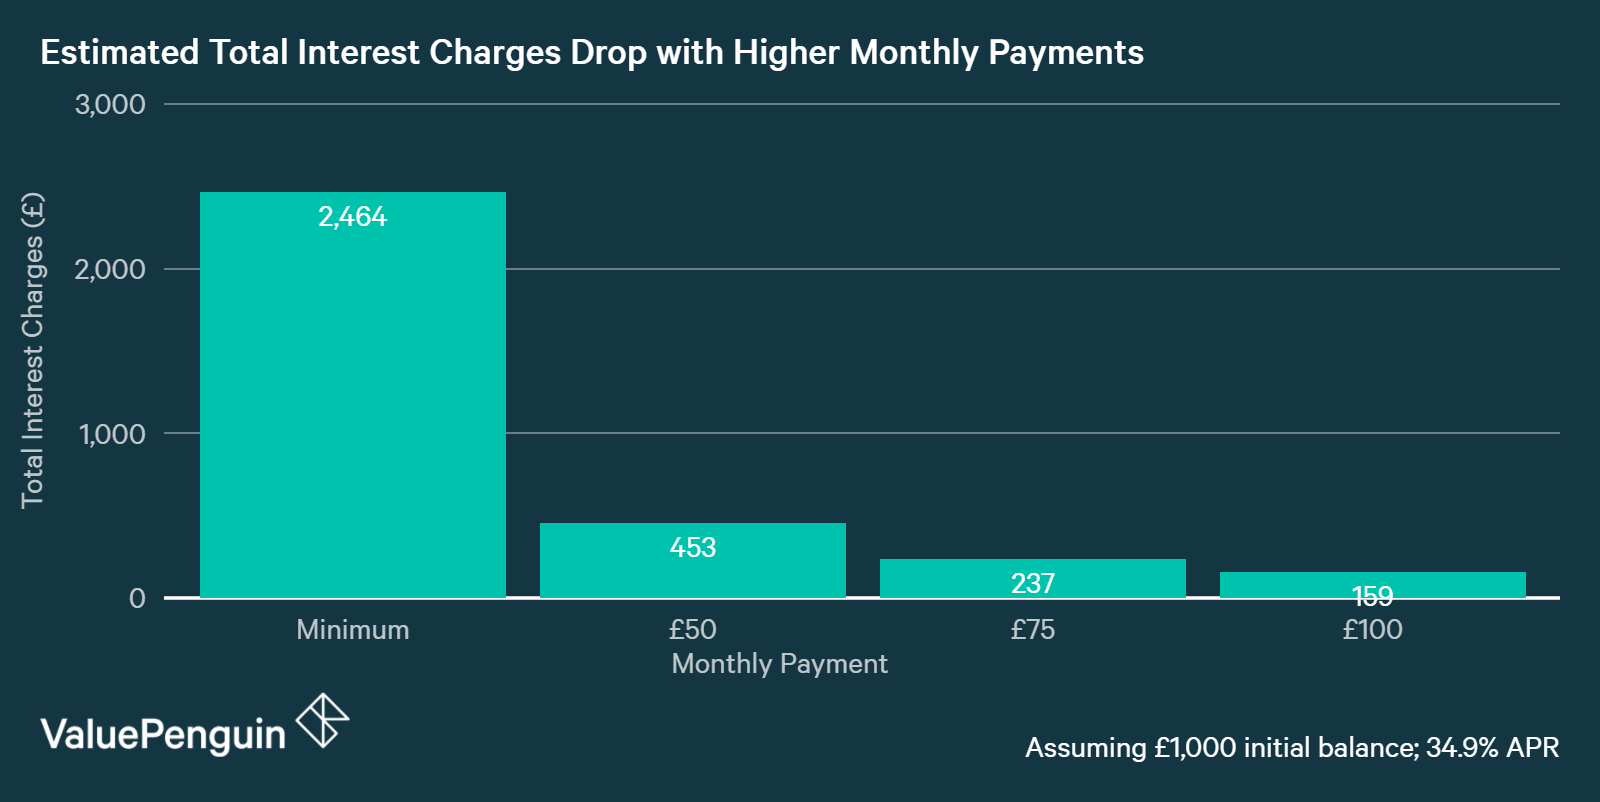 Chart showing How Total Interest Drops with Larger Monthly Payments